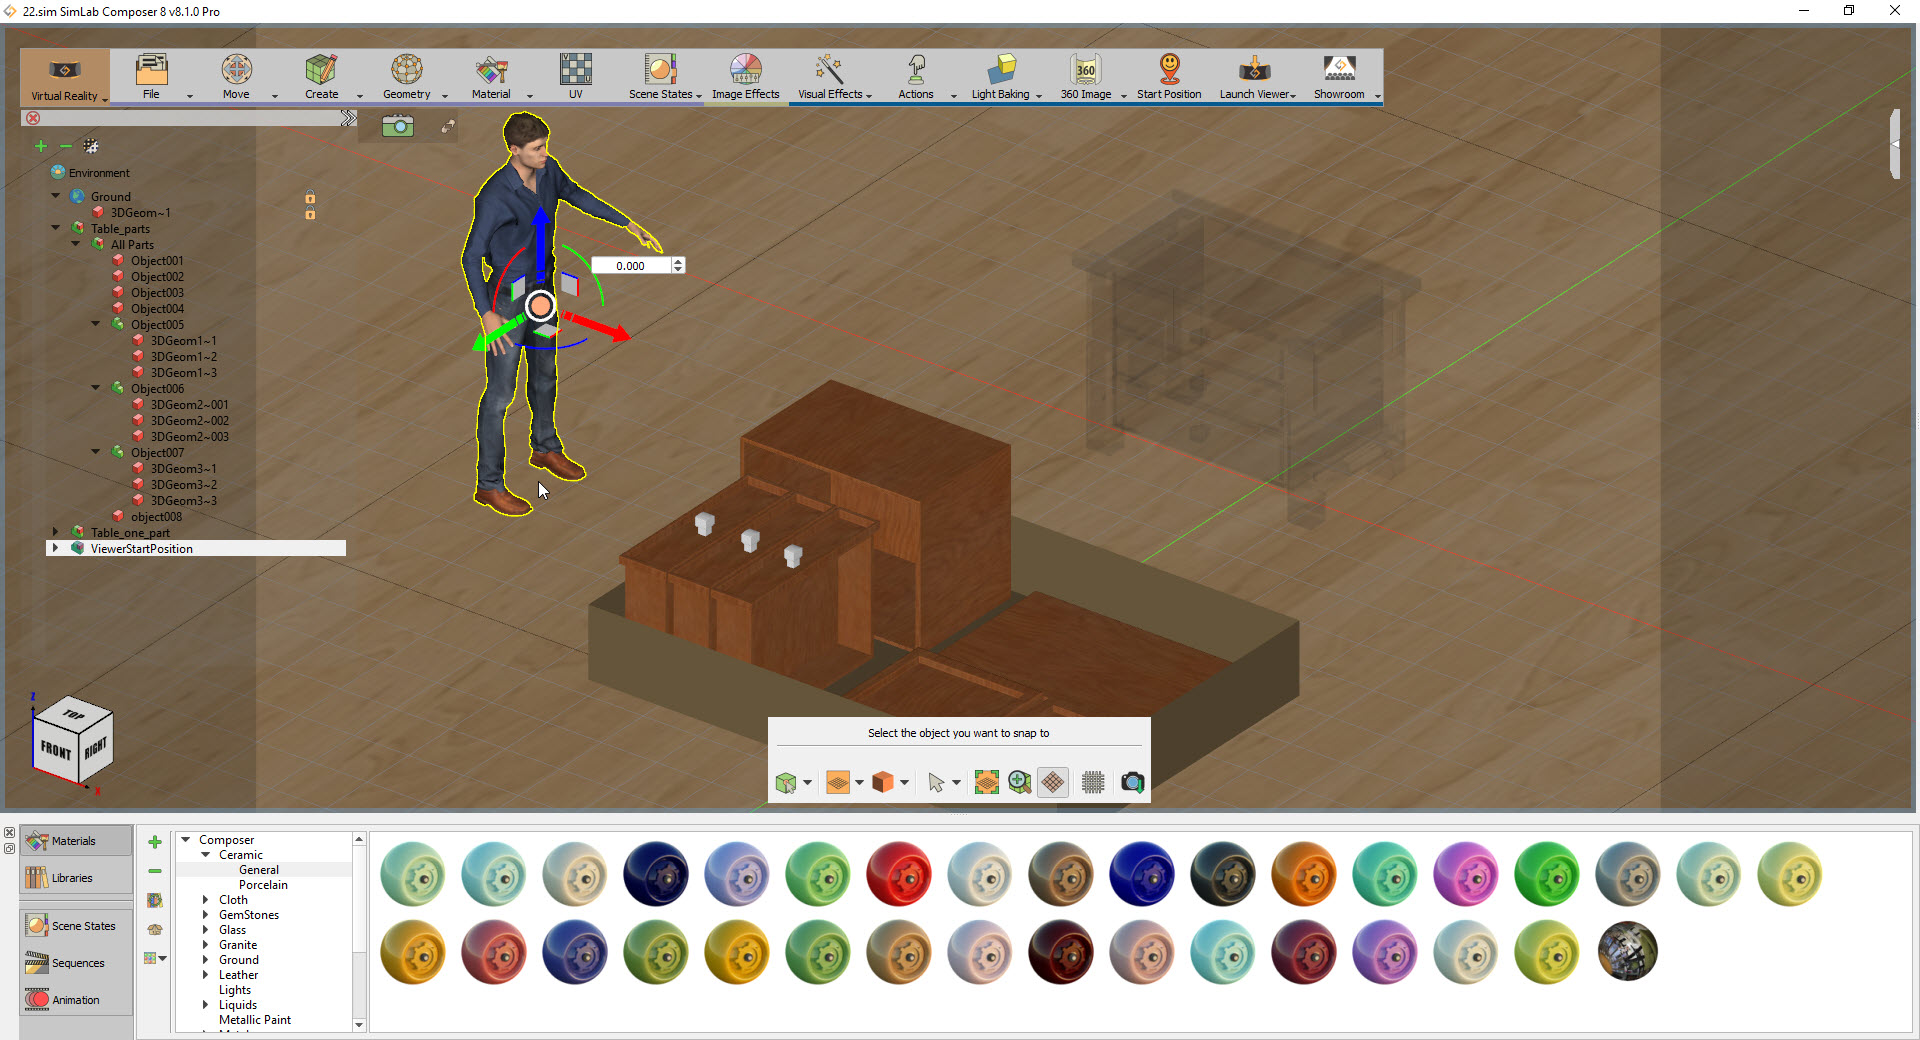 How to assemble separate components of a 3D model in virtual